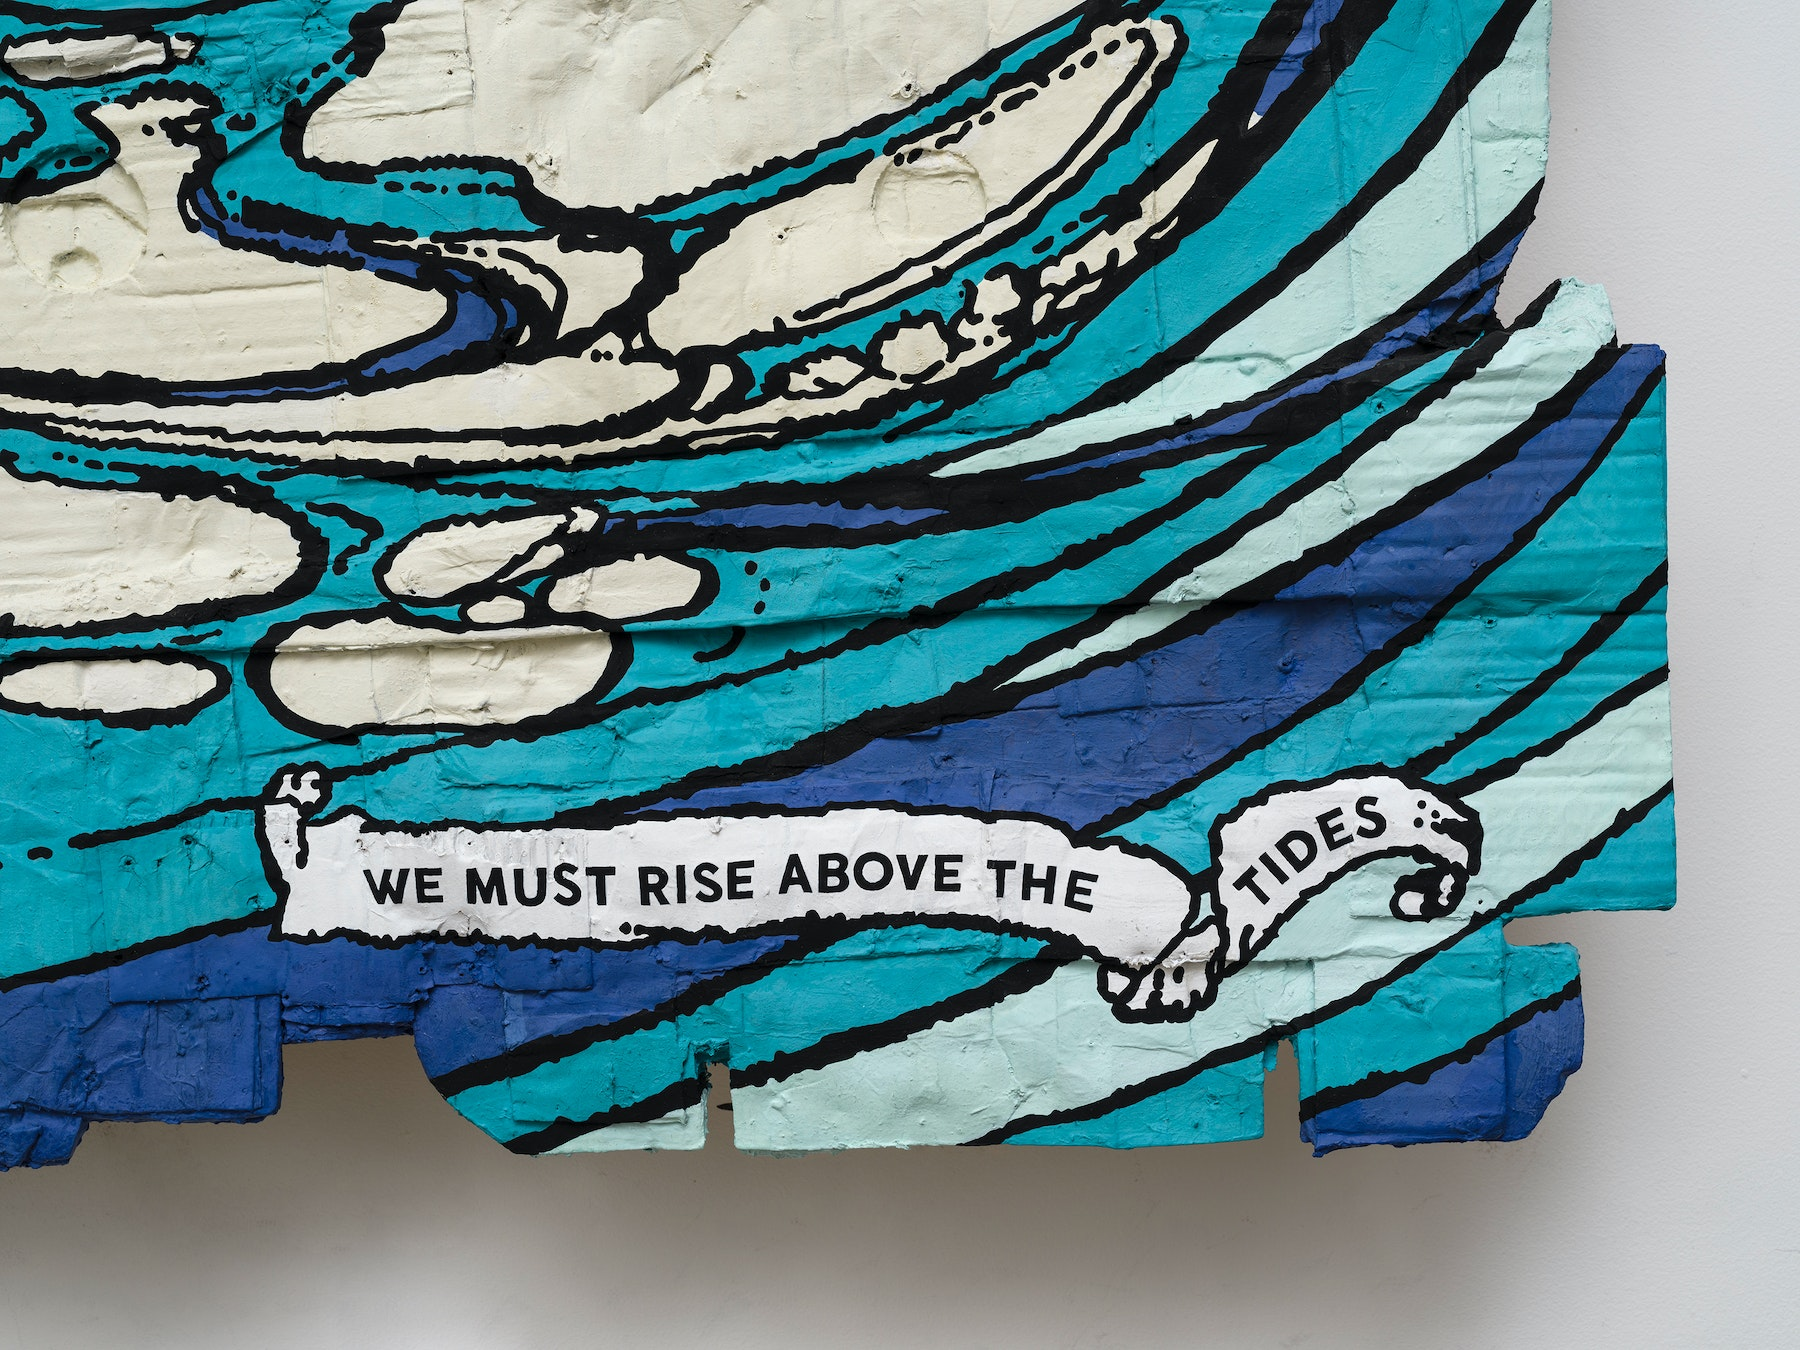 """Andrea Bowers """"We Must Rise Above the Tides, Protest Sign Slogan at Youth Climate Strike L.A., November 1, 2019 (Original Illustration by Arthur Rackham from Undine by Friedrich de La Motte Fouqué, Translated to English by William Leonard Courtney, Published by William Heinemann Ltd., London, 1909),"""" 2020 Acrylic marker on cardboard 84"""" x 62 ¹⁄₂"""" x 5"""" [HxWxD] (213.36 x 158.75 x 12.7 cm) Inventory #BOW551 Courtesy of the artist and Vielmetter Los Angeles Photo credit: Jeff Mclane"""